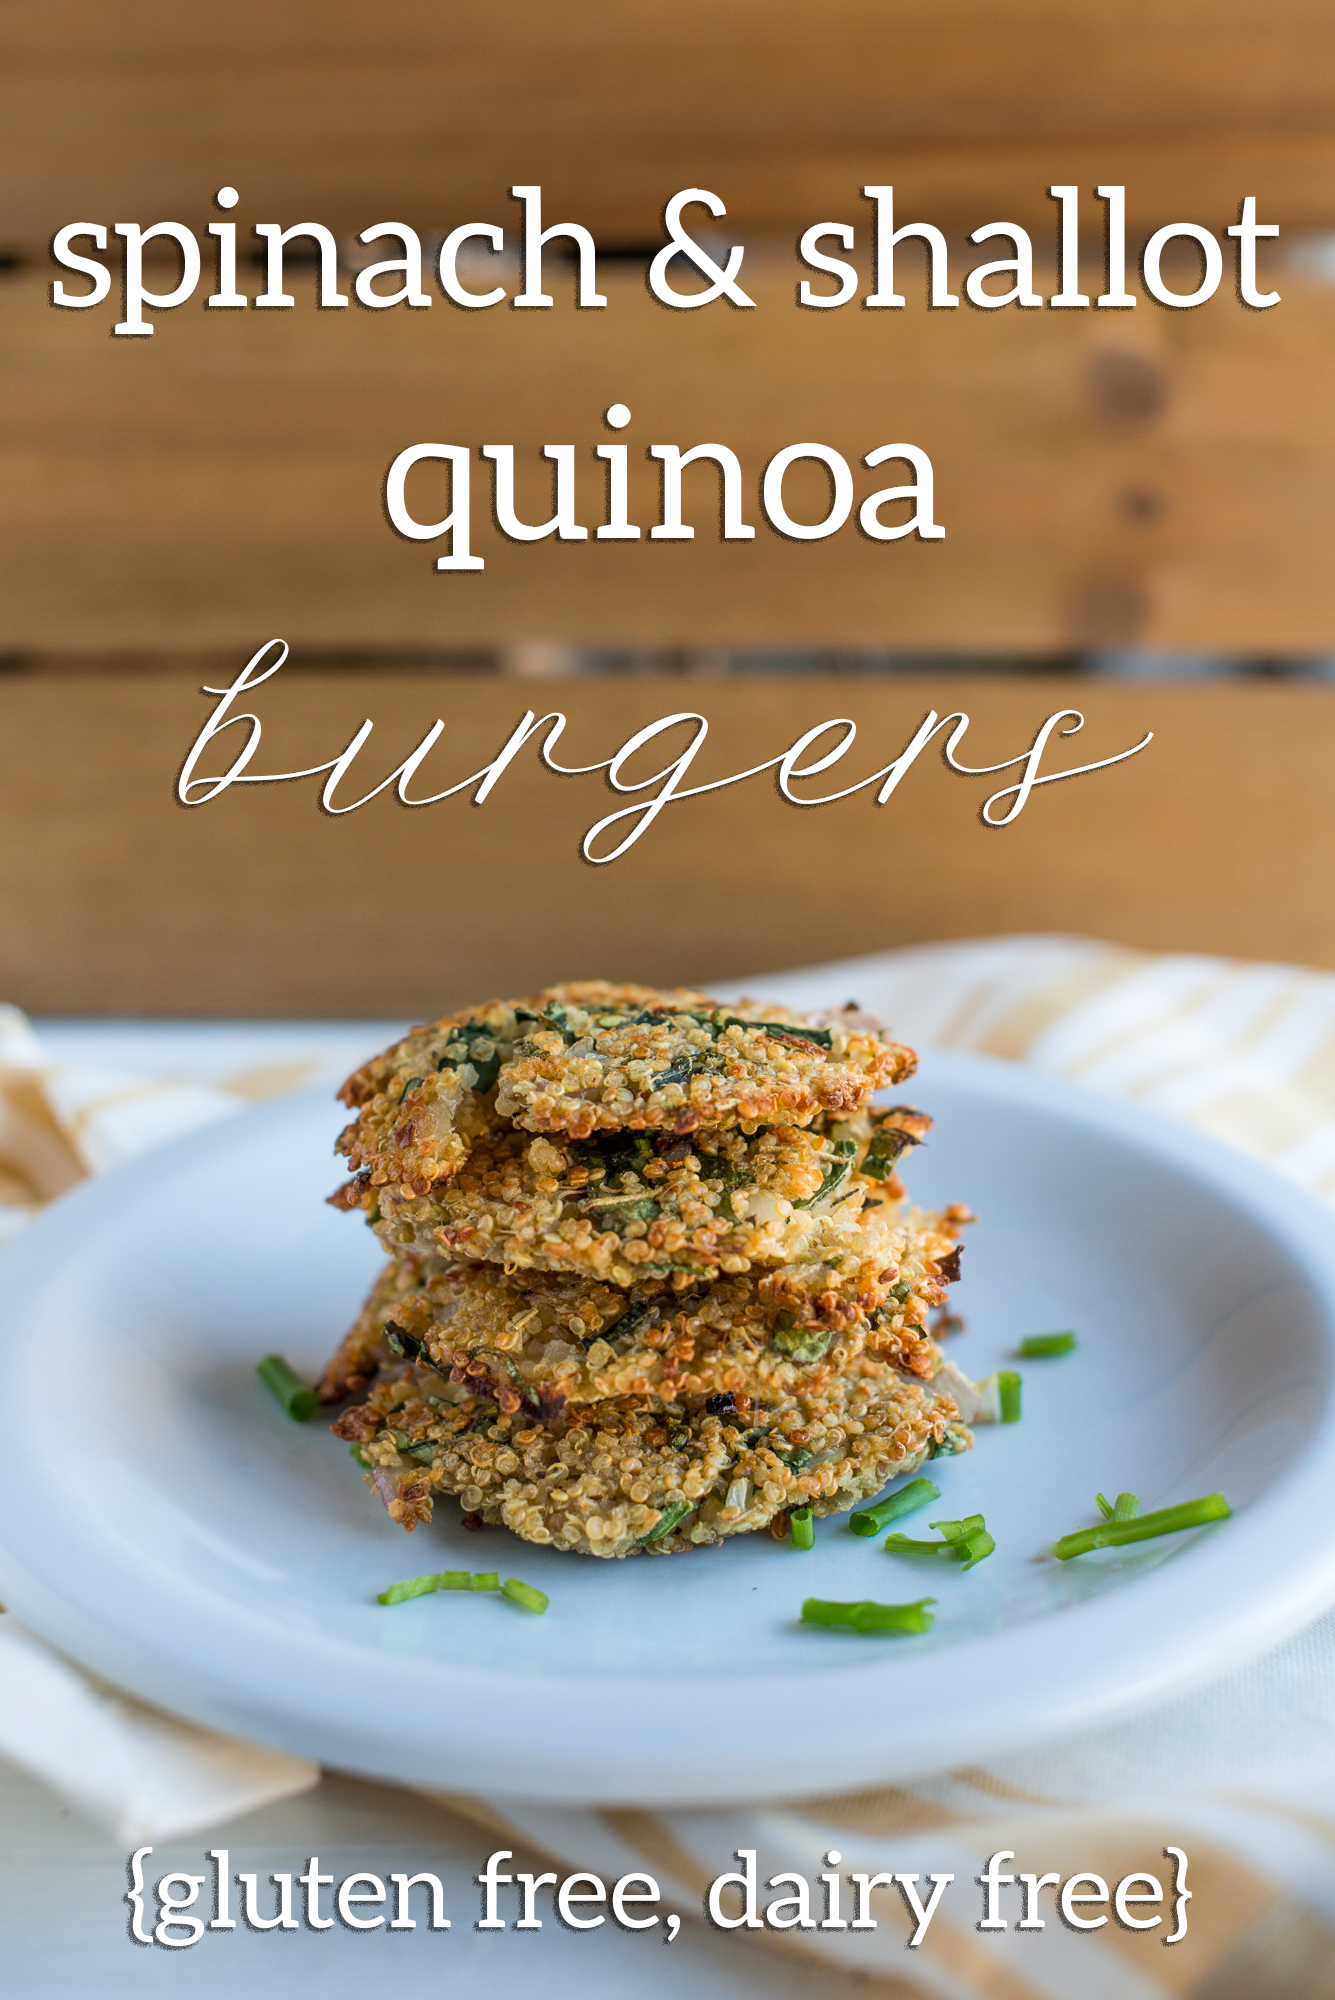 Spinach & Shallot Quinoa Burgers (Gluten Free, Dairy Free)